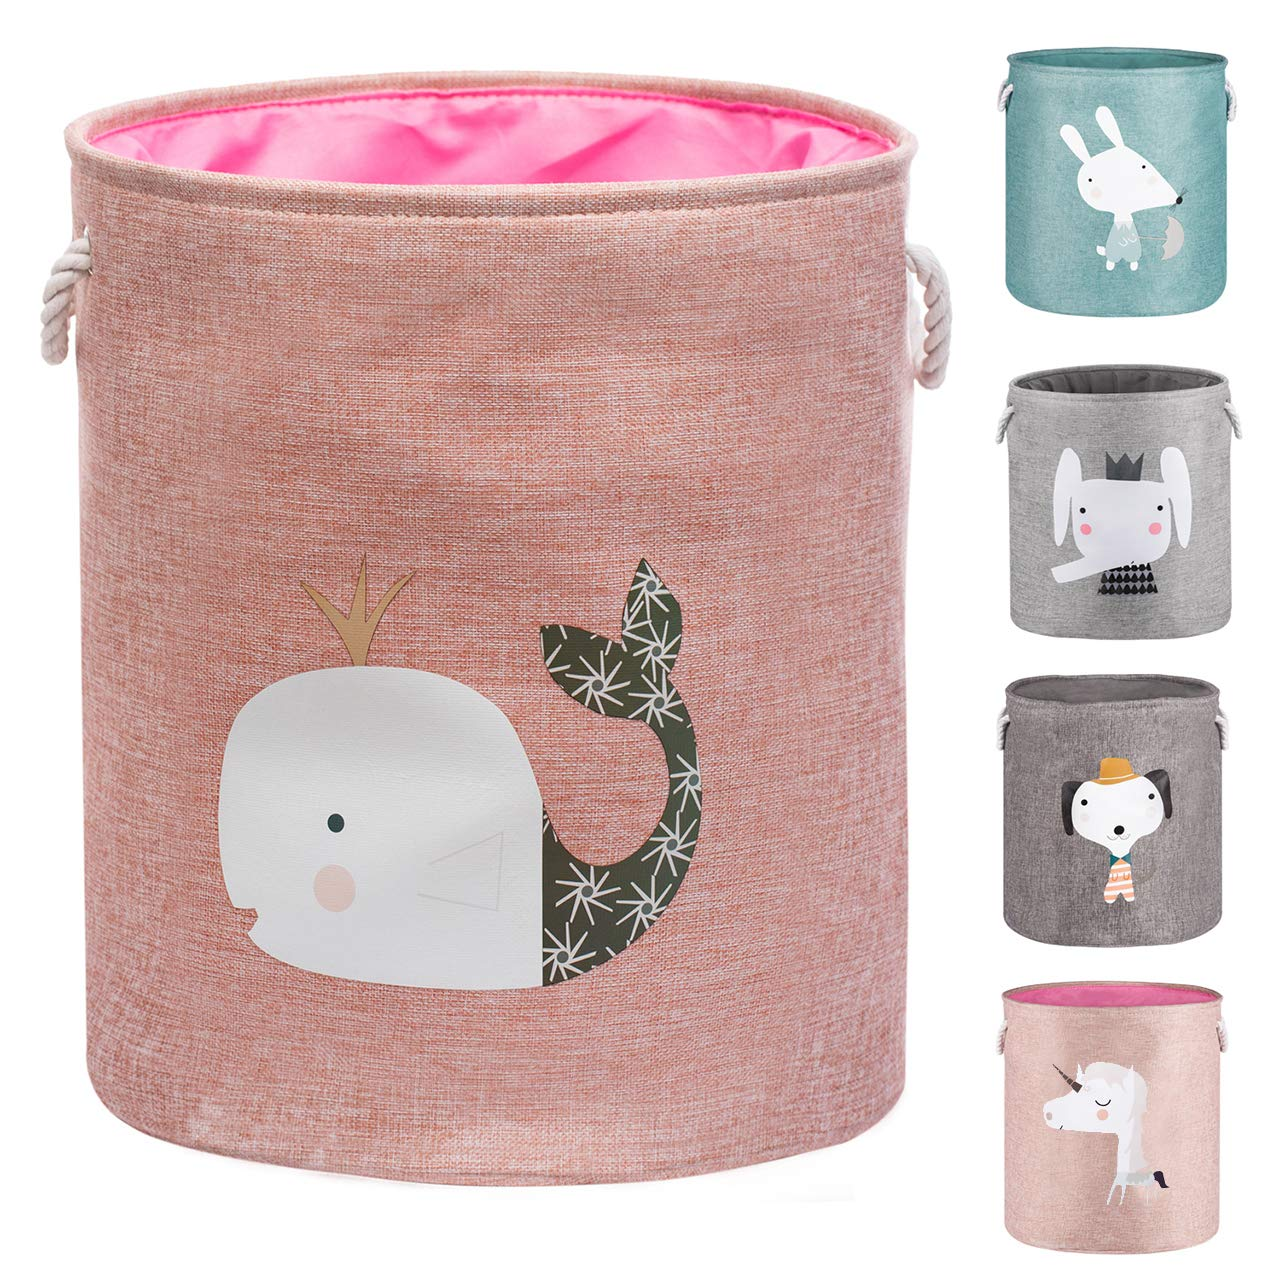 "AXHOP 22"" Upgrade Large Collapsible Laundry Basket with Lid, Toy Storage Baskets Bin for Kids, Dog, Toys, Blanket, Clothes, Cute Animal Laundry Hamper(Pink Whale)"